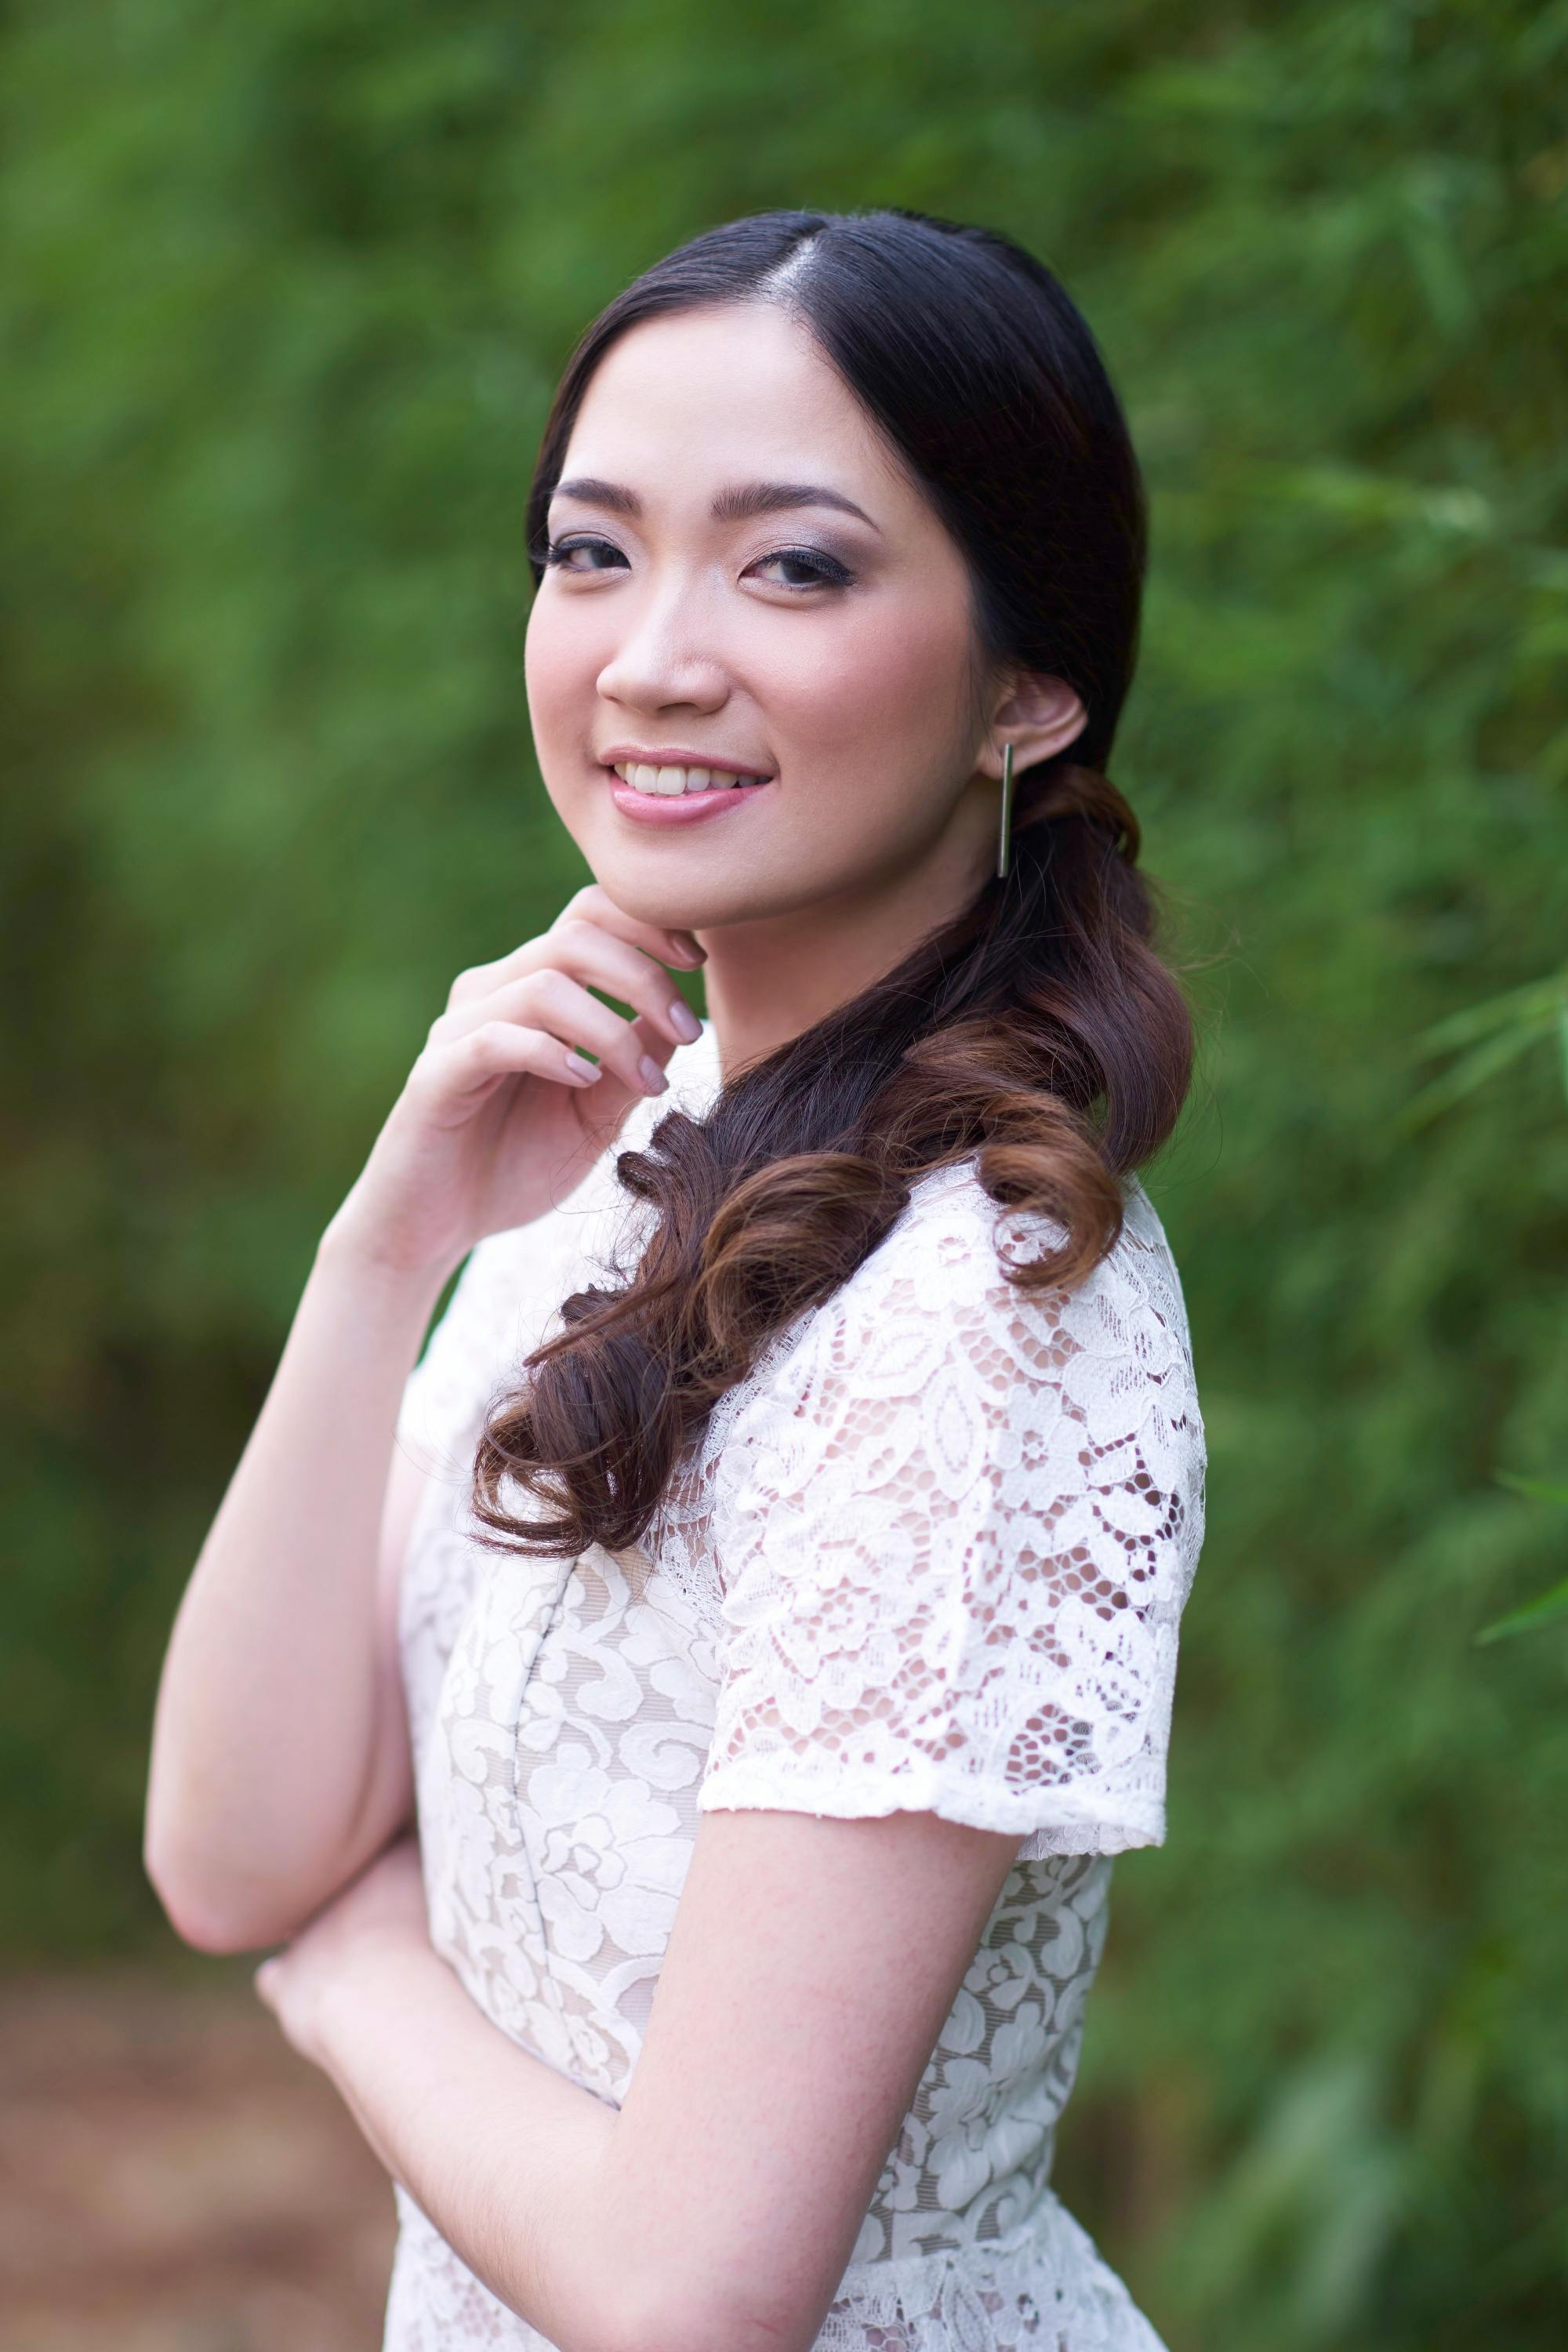 Graduation Hairstyles: Asian woman with long dark hair in curly side ponytail